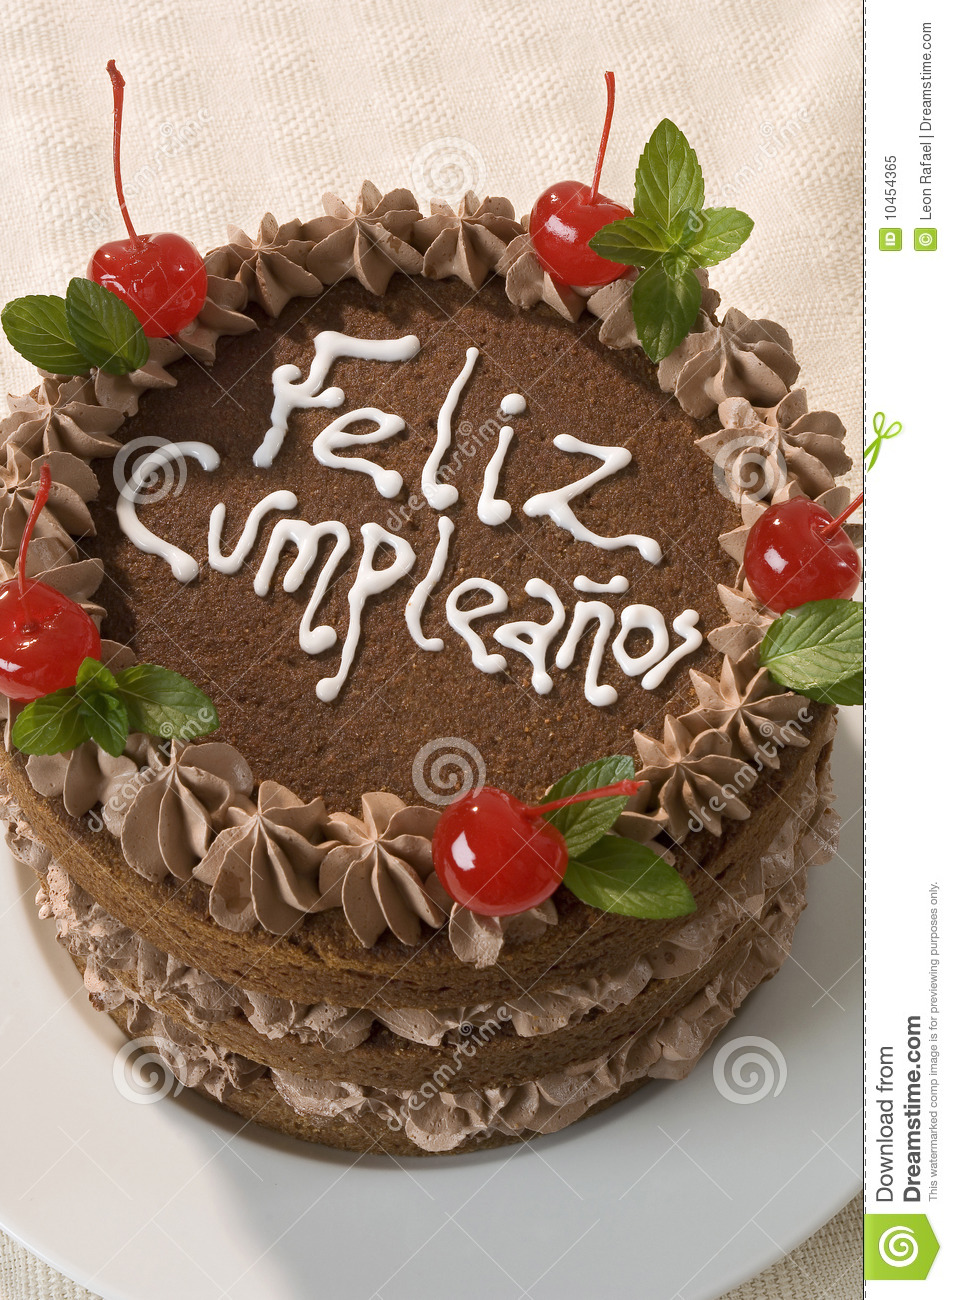 ... similar stock images of ` Dedicated Chocolate Birthday Cake Close Up